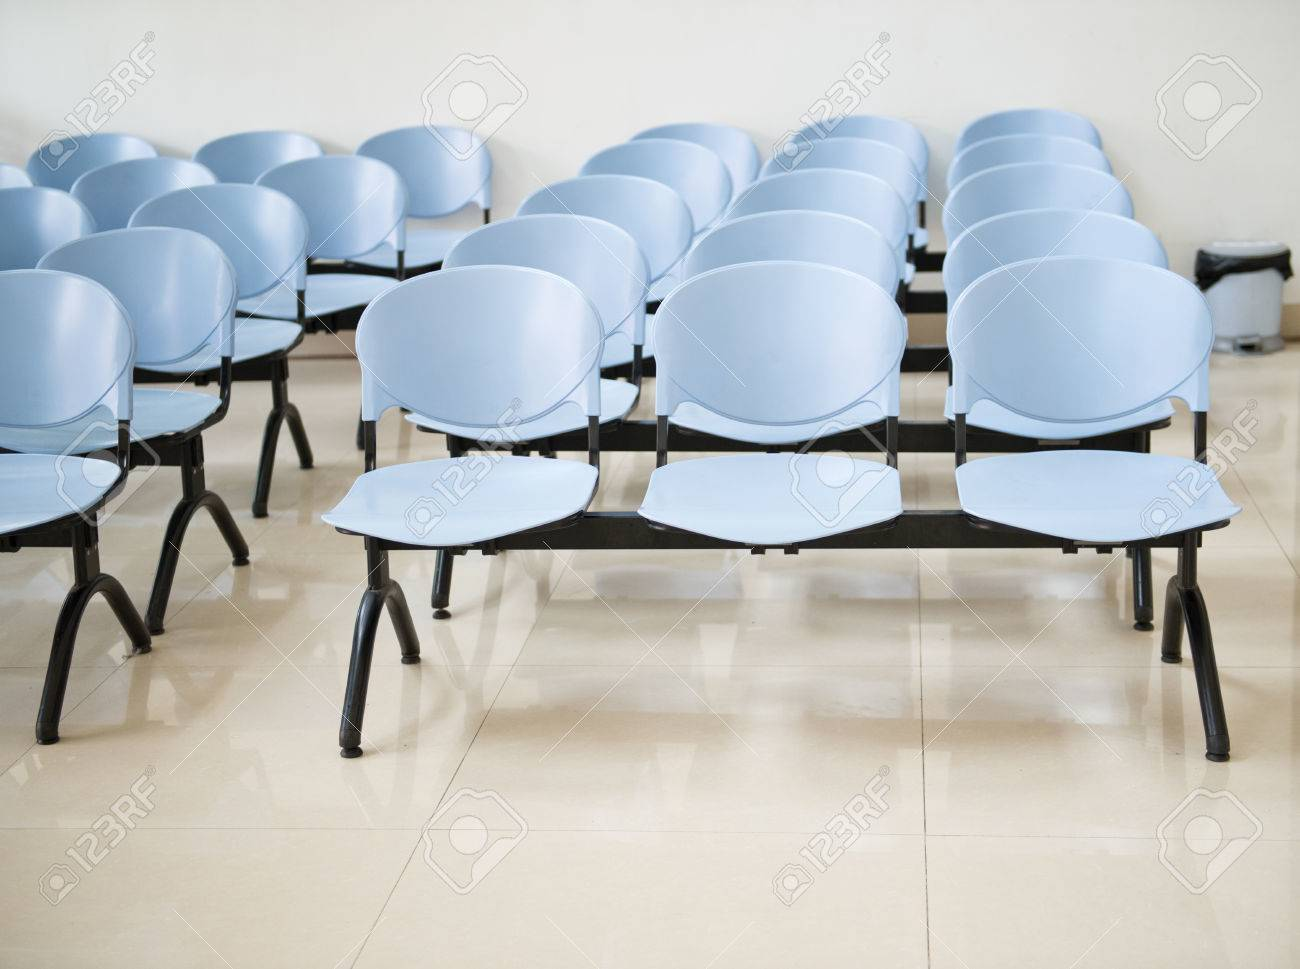 Empty chair in room - Hospital Waiting Room With Empty Chairs Stock Photo 24936678